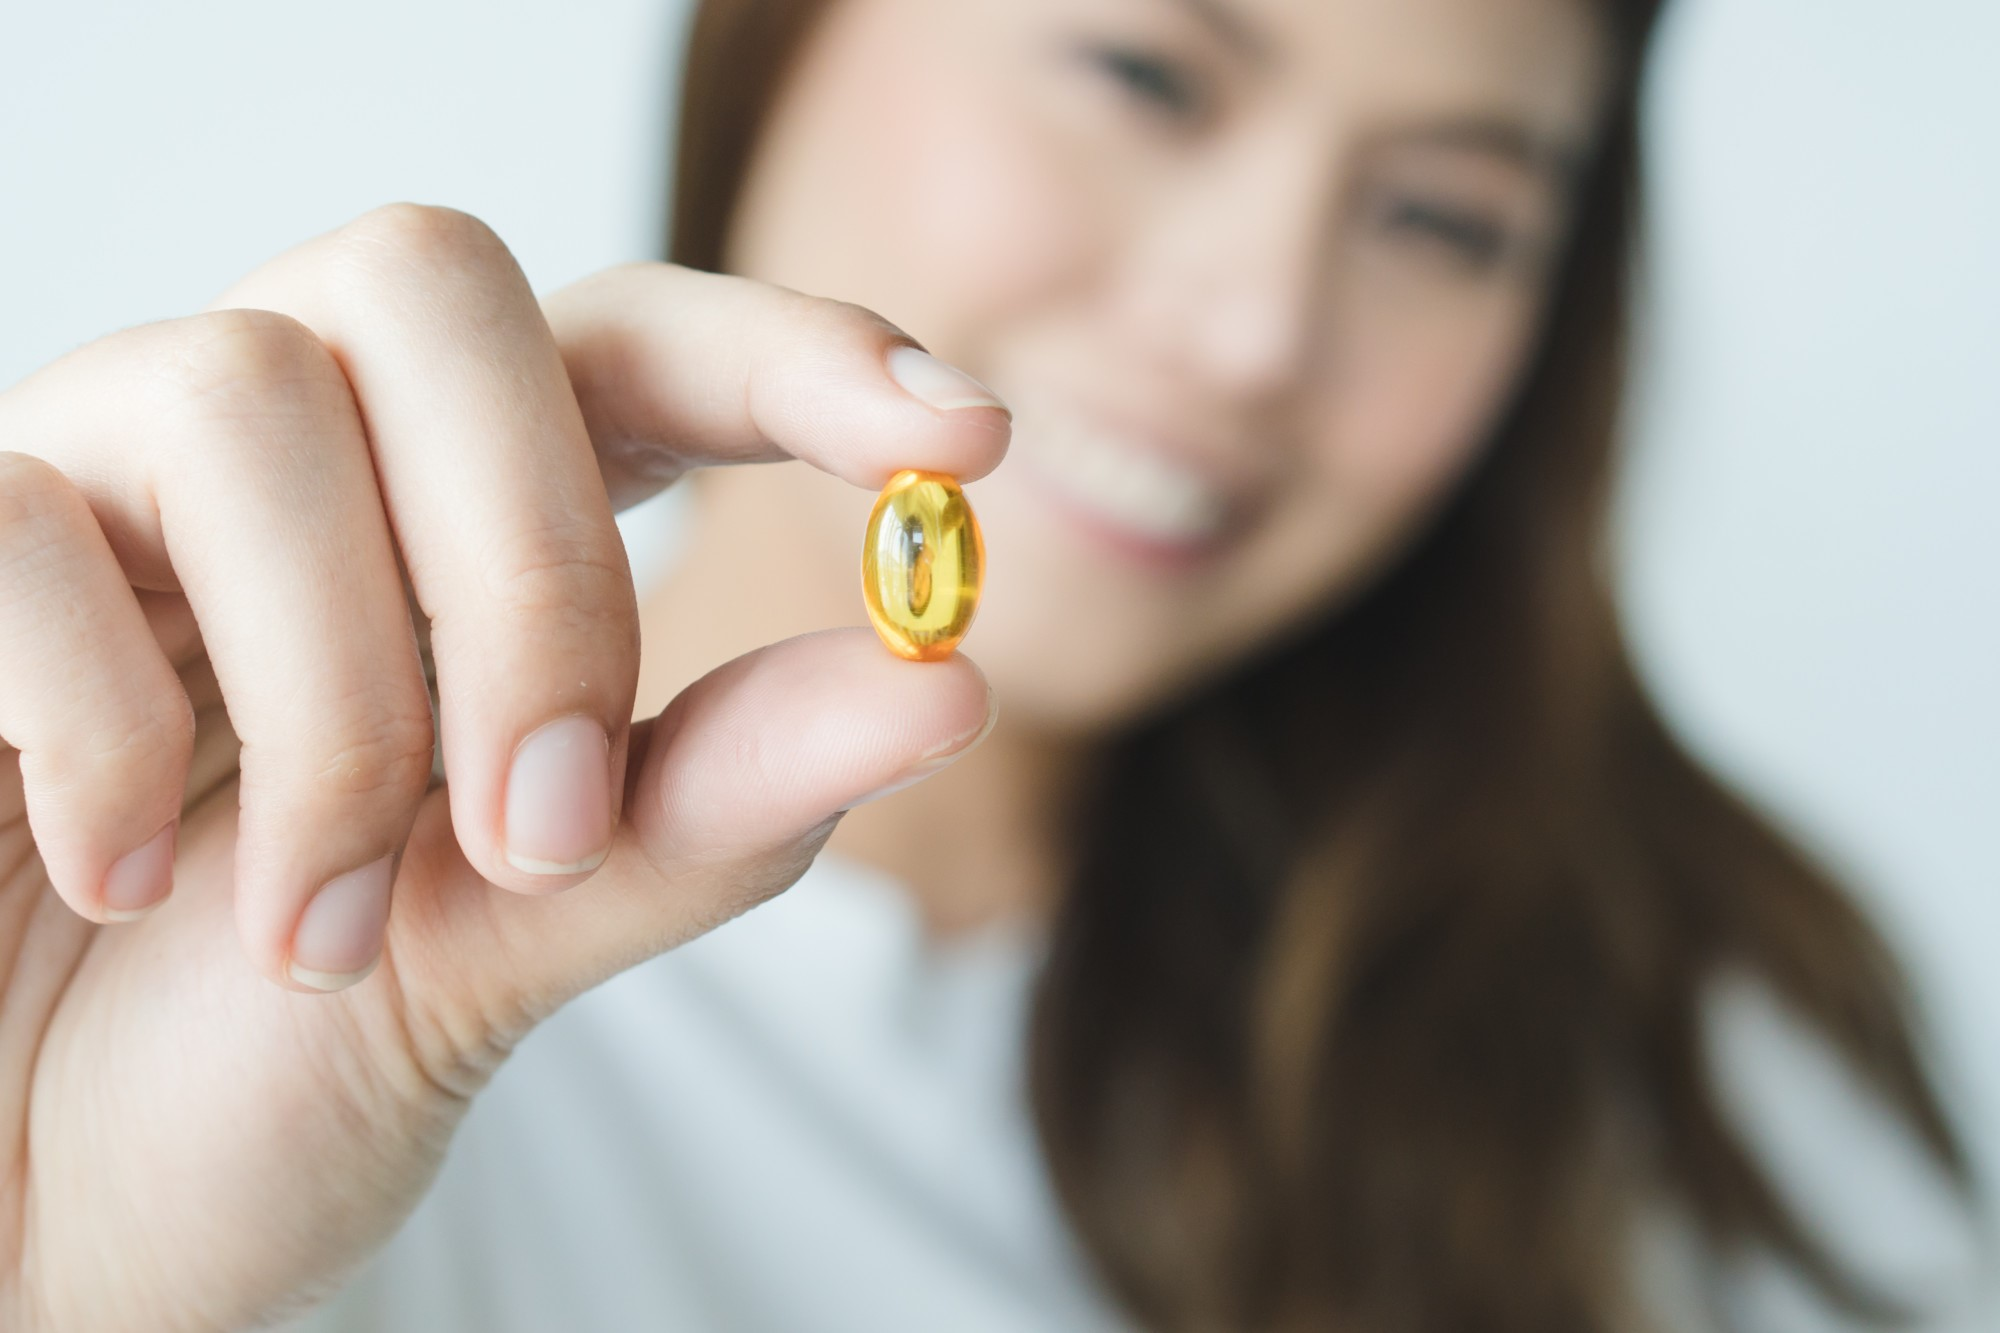 Your Daily Dose: When Should You Take Multivitamins?